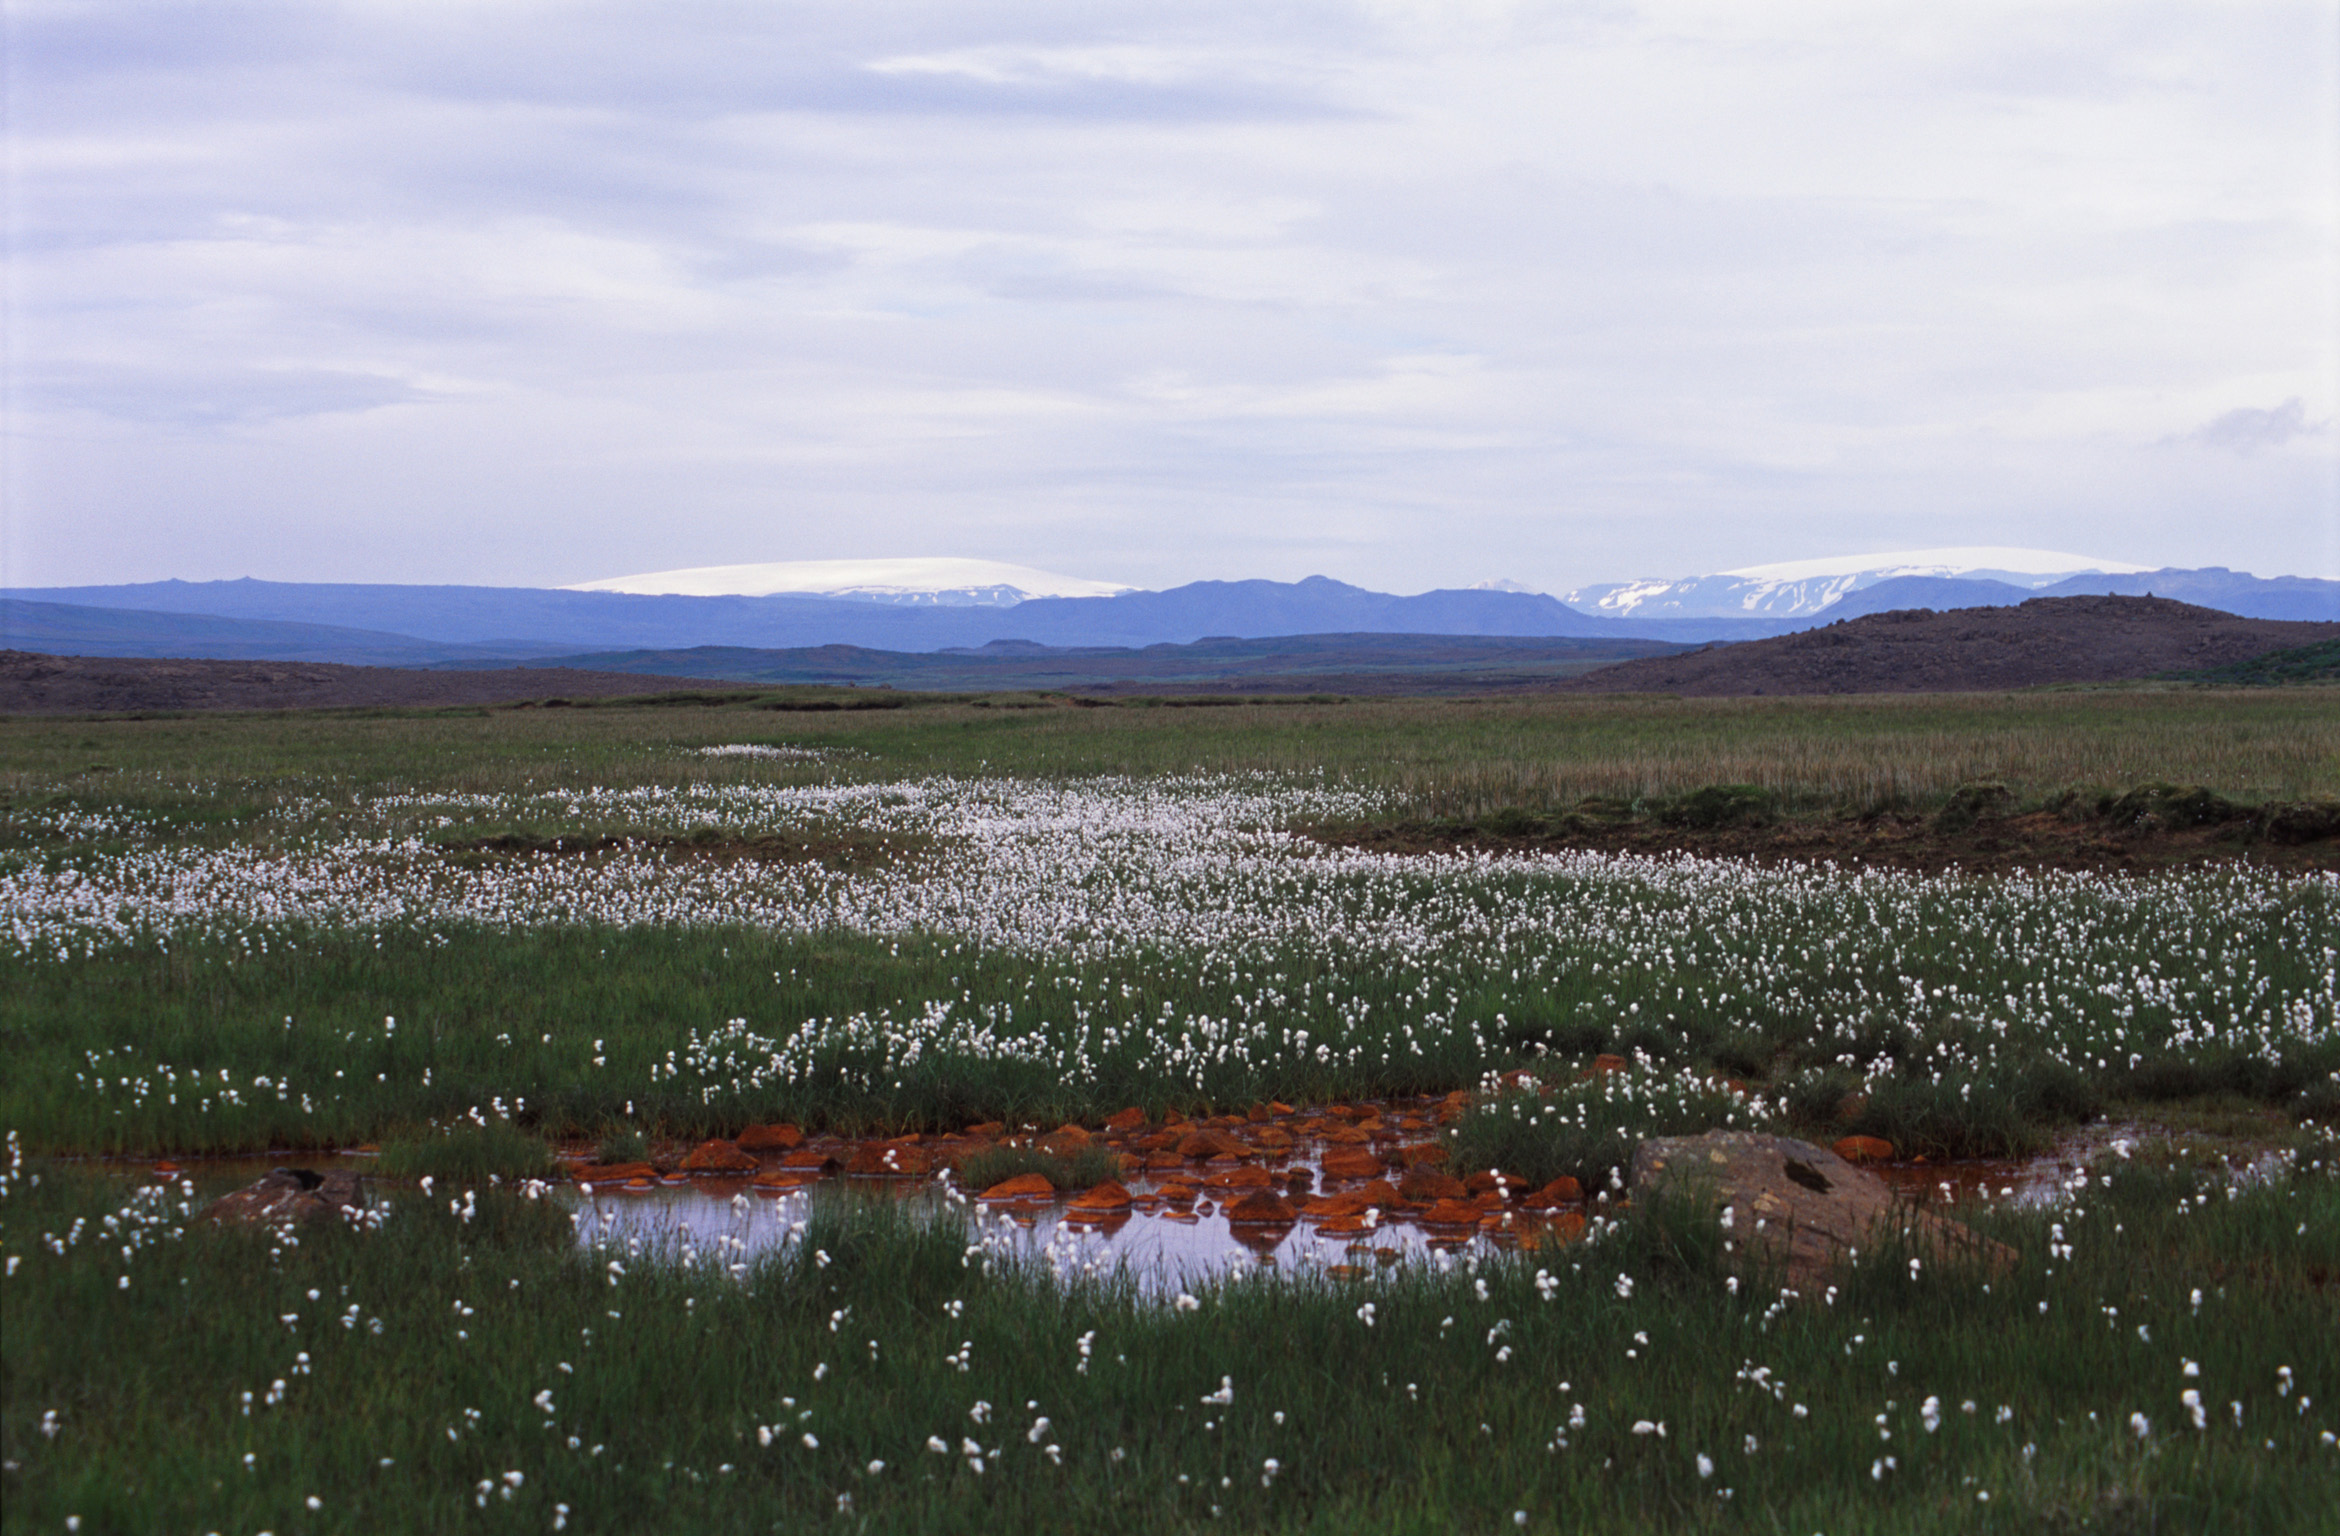 Icelandic flax growing on a remote plateau in the mountains from which linseed oil and flax fiber are obtained